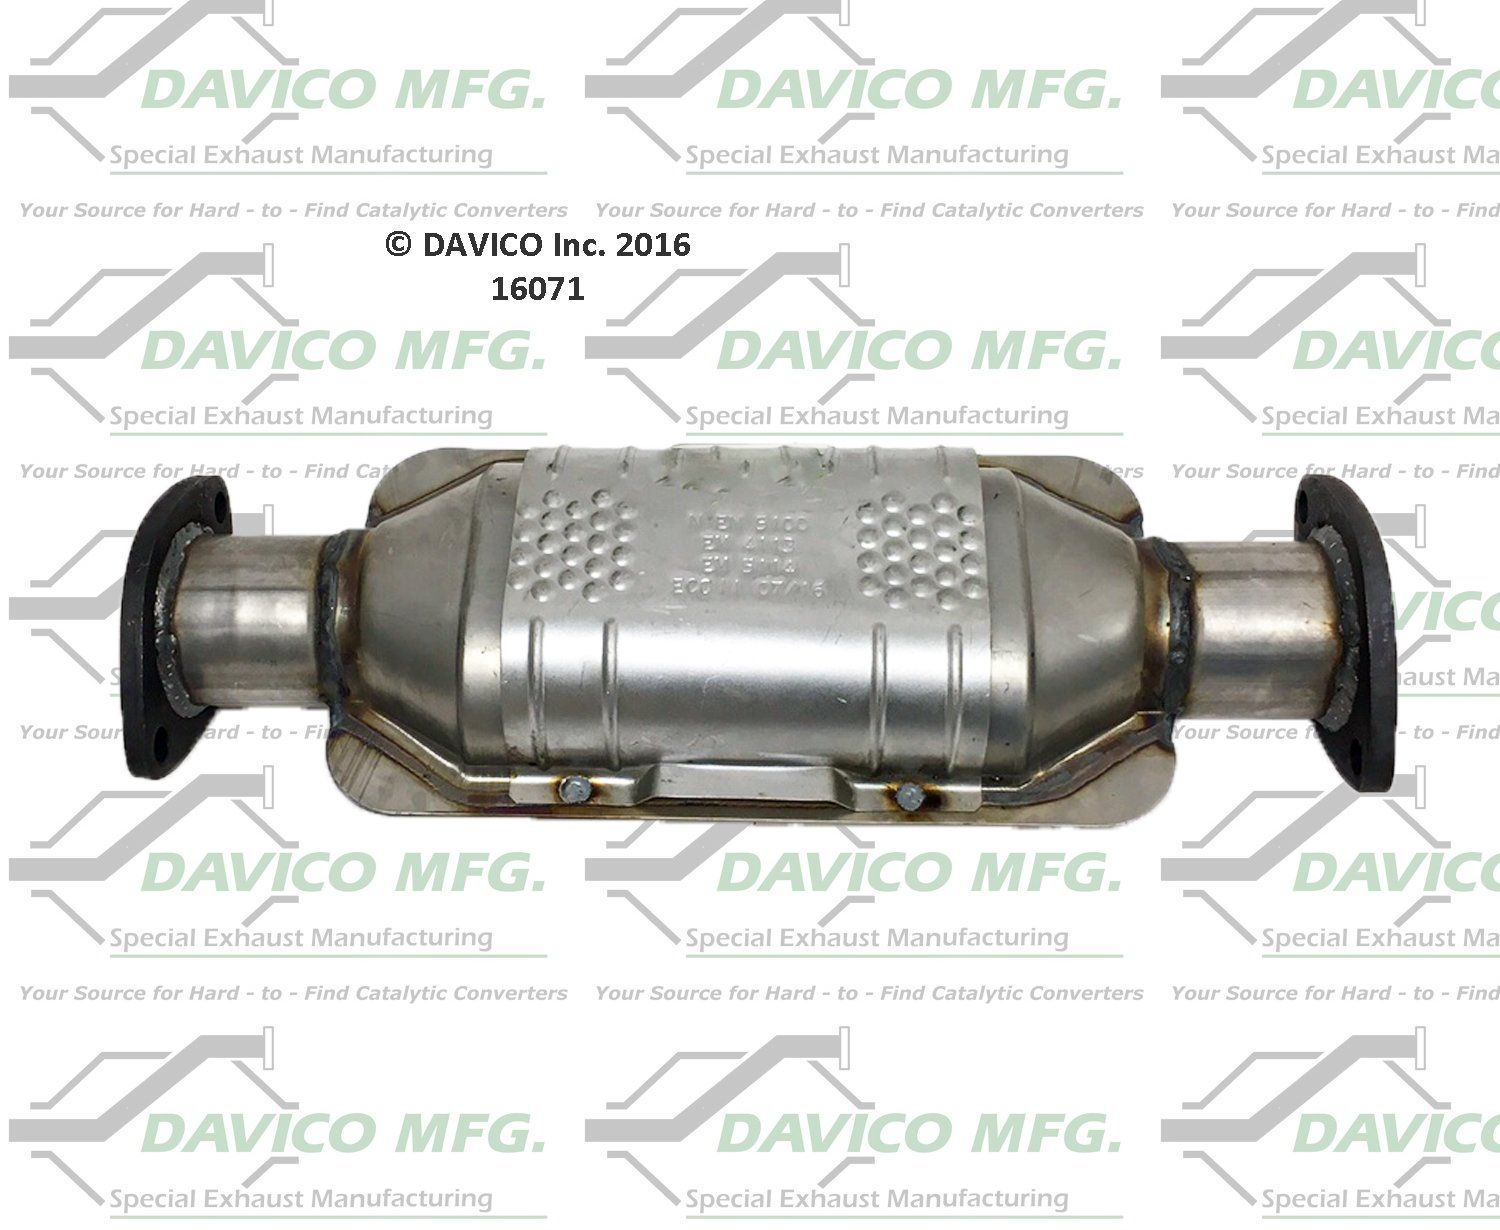 Toyota 4runner Catalytic Converter Replacement Bosal Dec Davico 1992 Exhaust System Rear 6 Cyl 30l Converters 16071 2 1 In Id Flanges 421 Center To Bolt Hole Federal